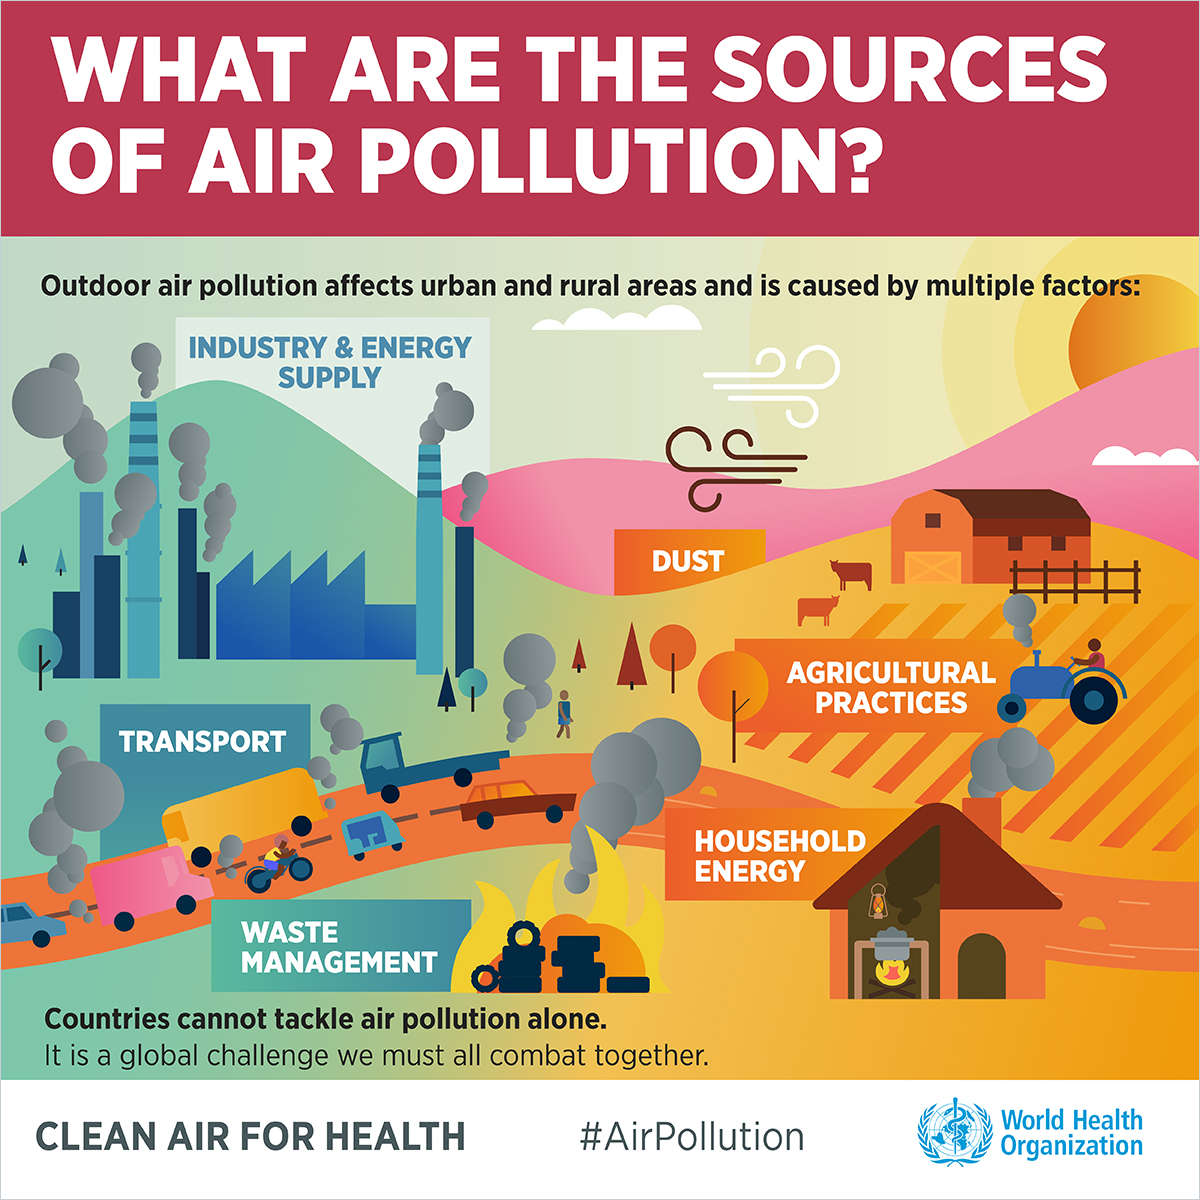 Sources of air pollution (Source: WHO)